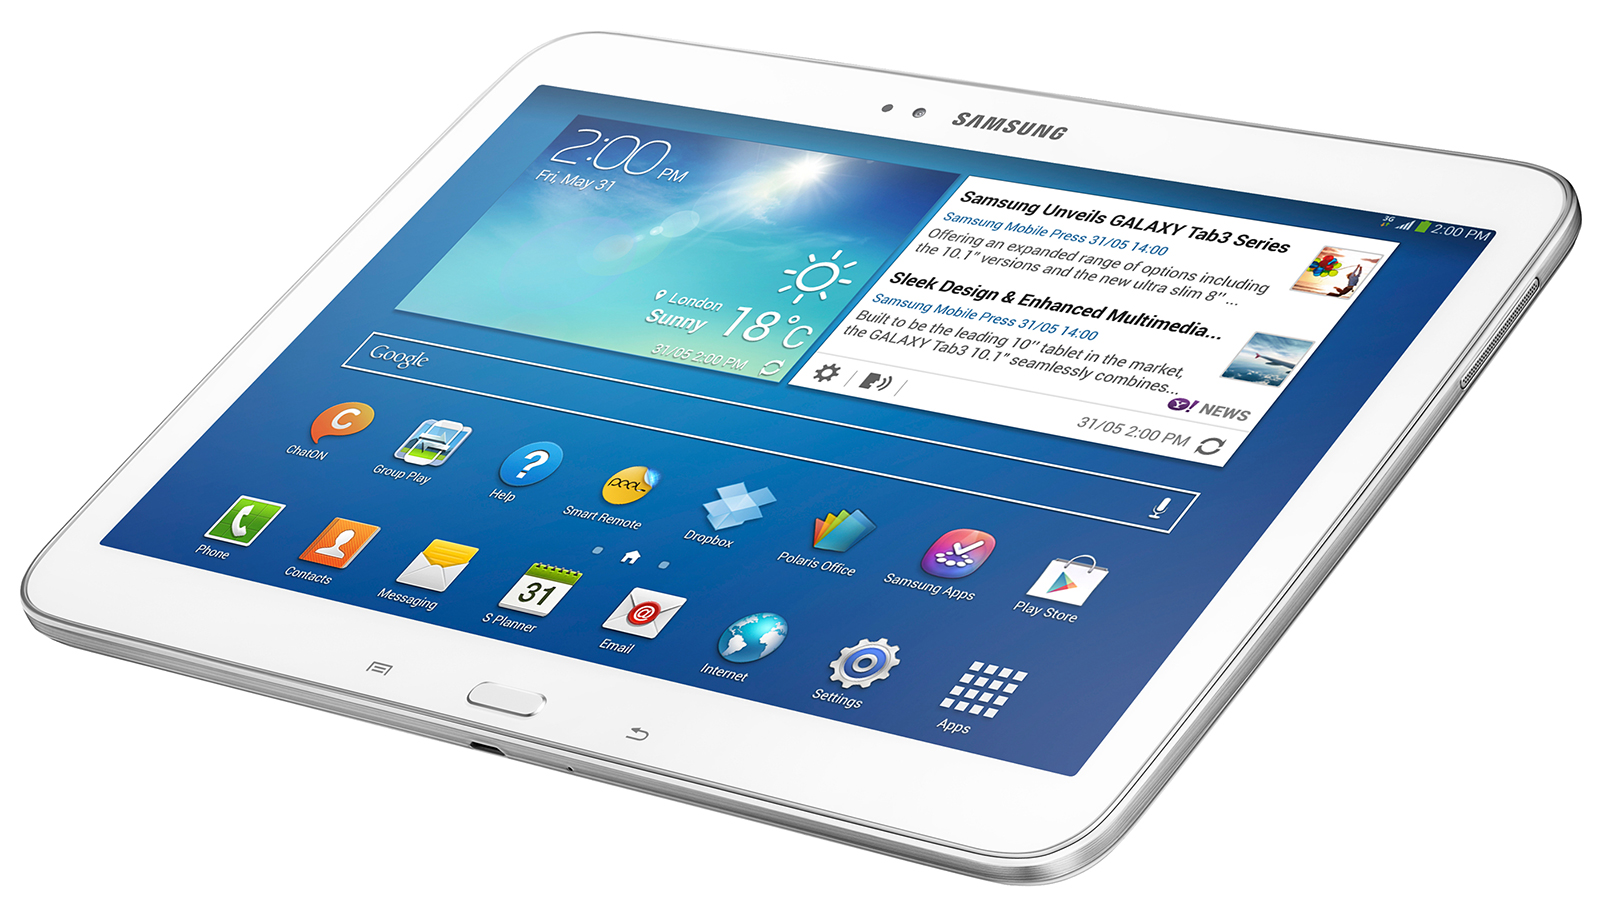 samsung galaxy tab 3 10 1 p5200 full tablet specifications comparison. Black Bedroom Furniture Sets. Home Design Ideas